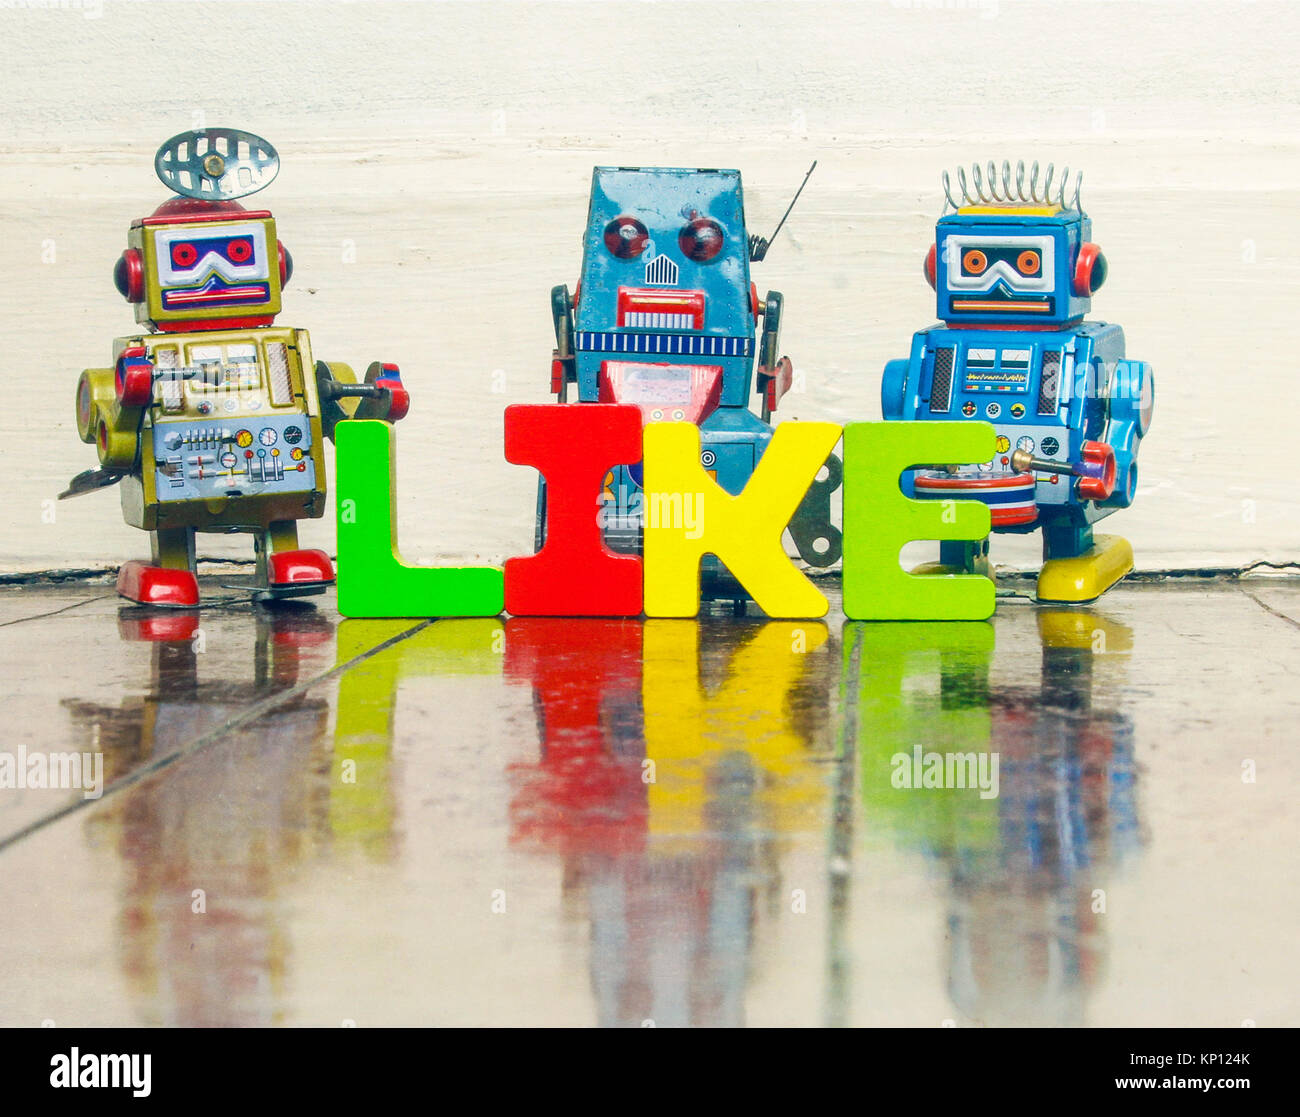 The Word Like With Retro Robot Toys On Old Wooden Floor With Stock